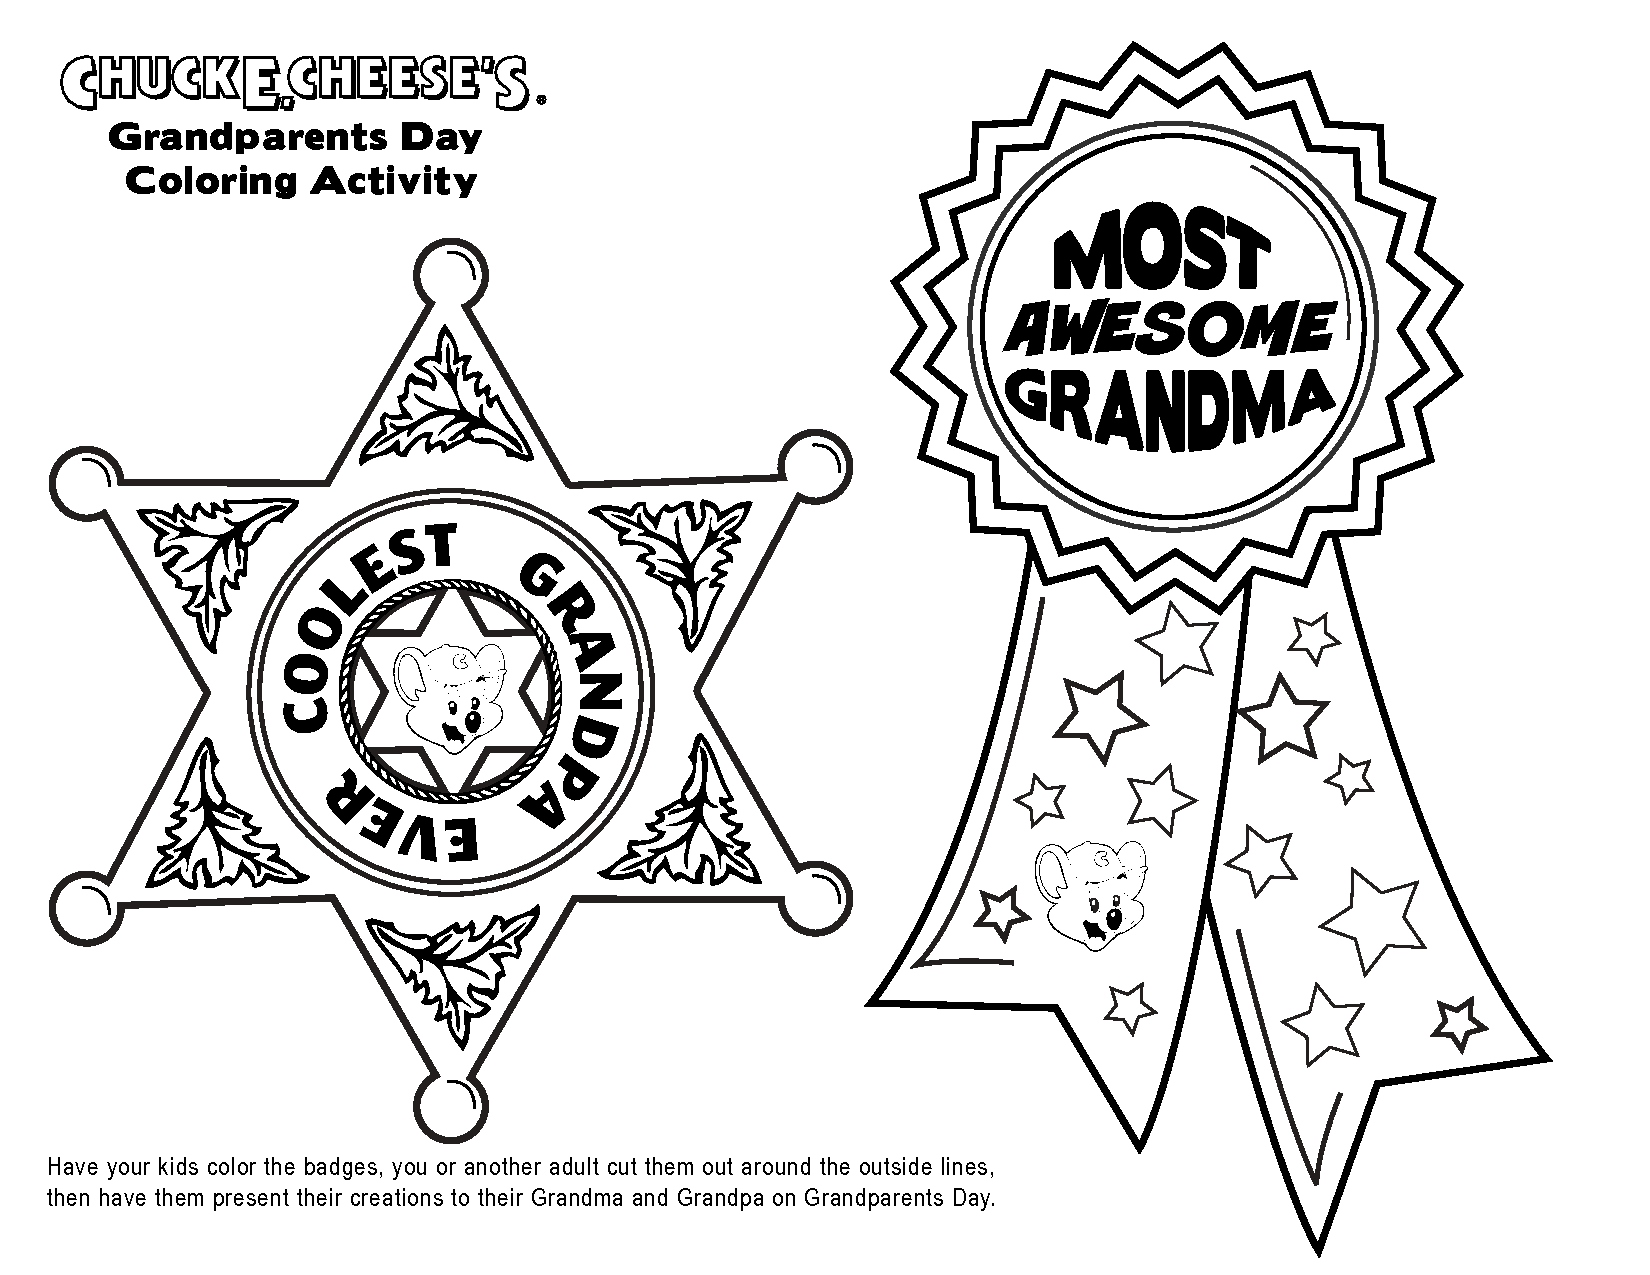 Free coloring pages grandparents day - Grandparents Day Coloring Pages To Print And Color Grandparents